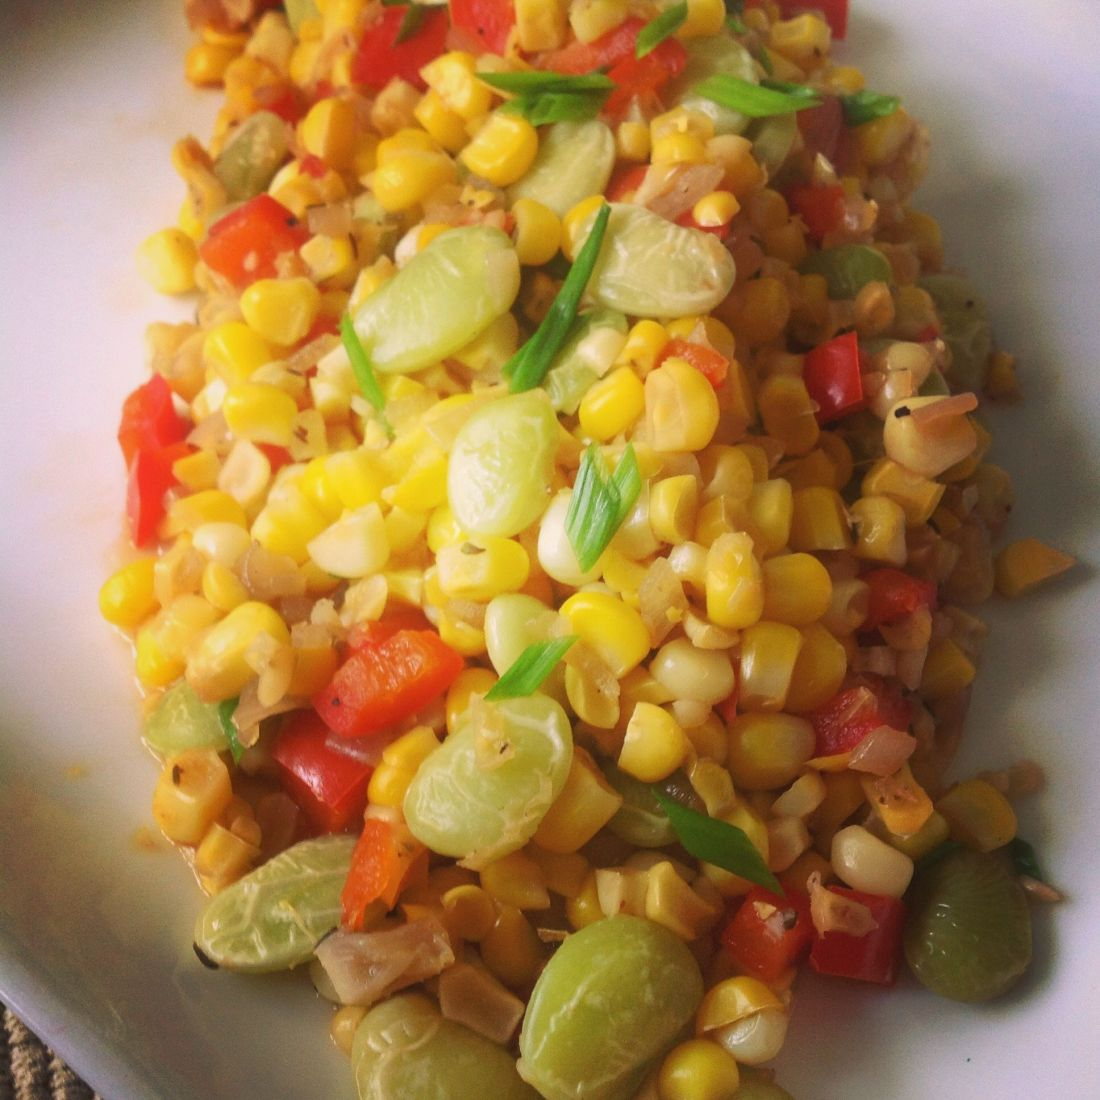 Sweet Summer Corn Succotash - Healthy, Gluten-Free, Oil-Free, Plant-Based, Vegan Recipe